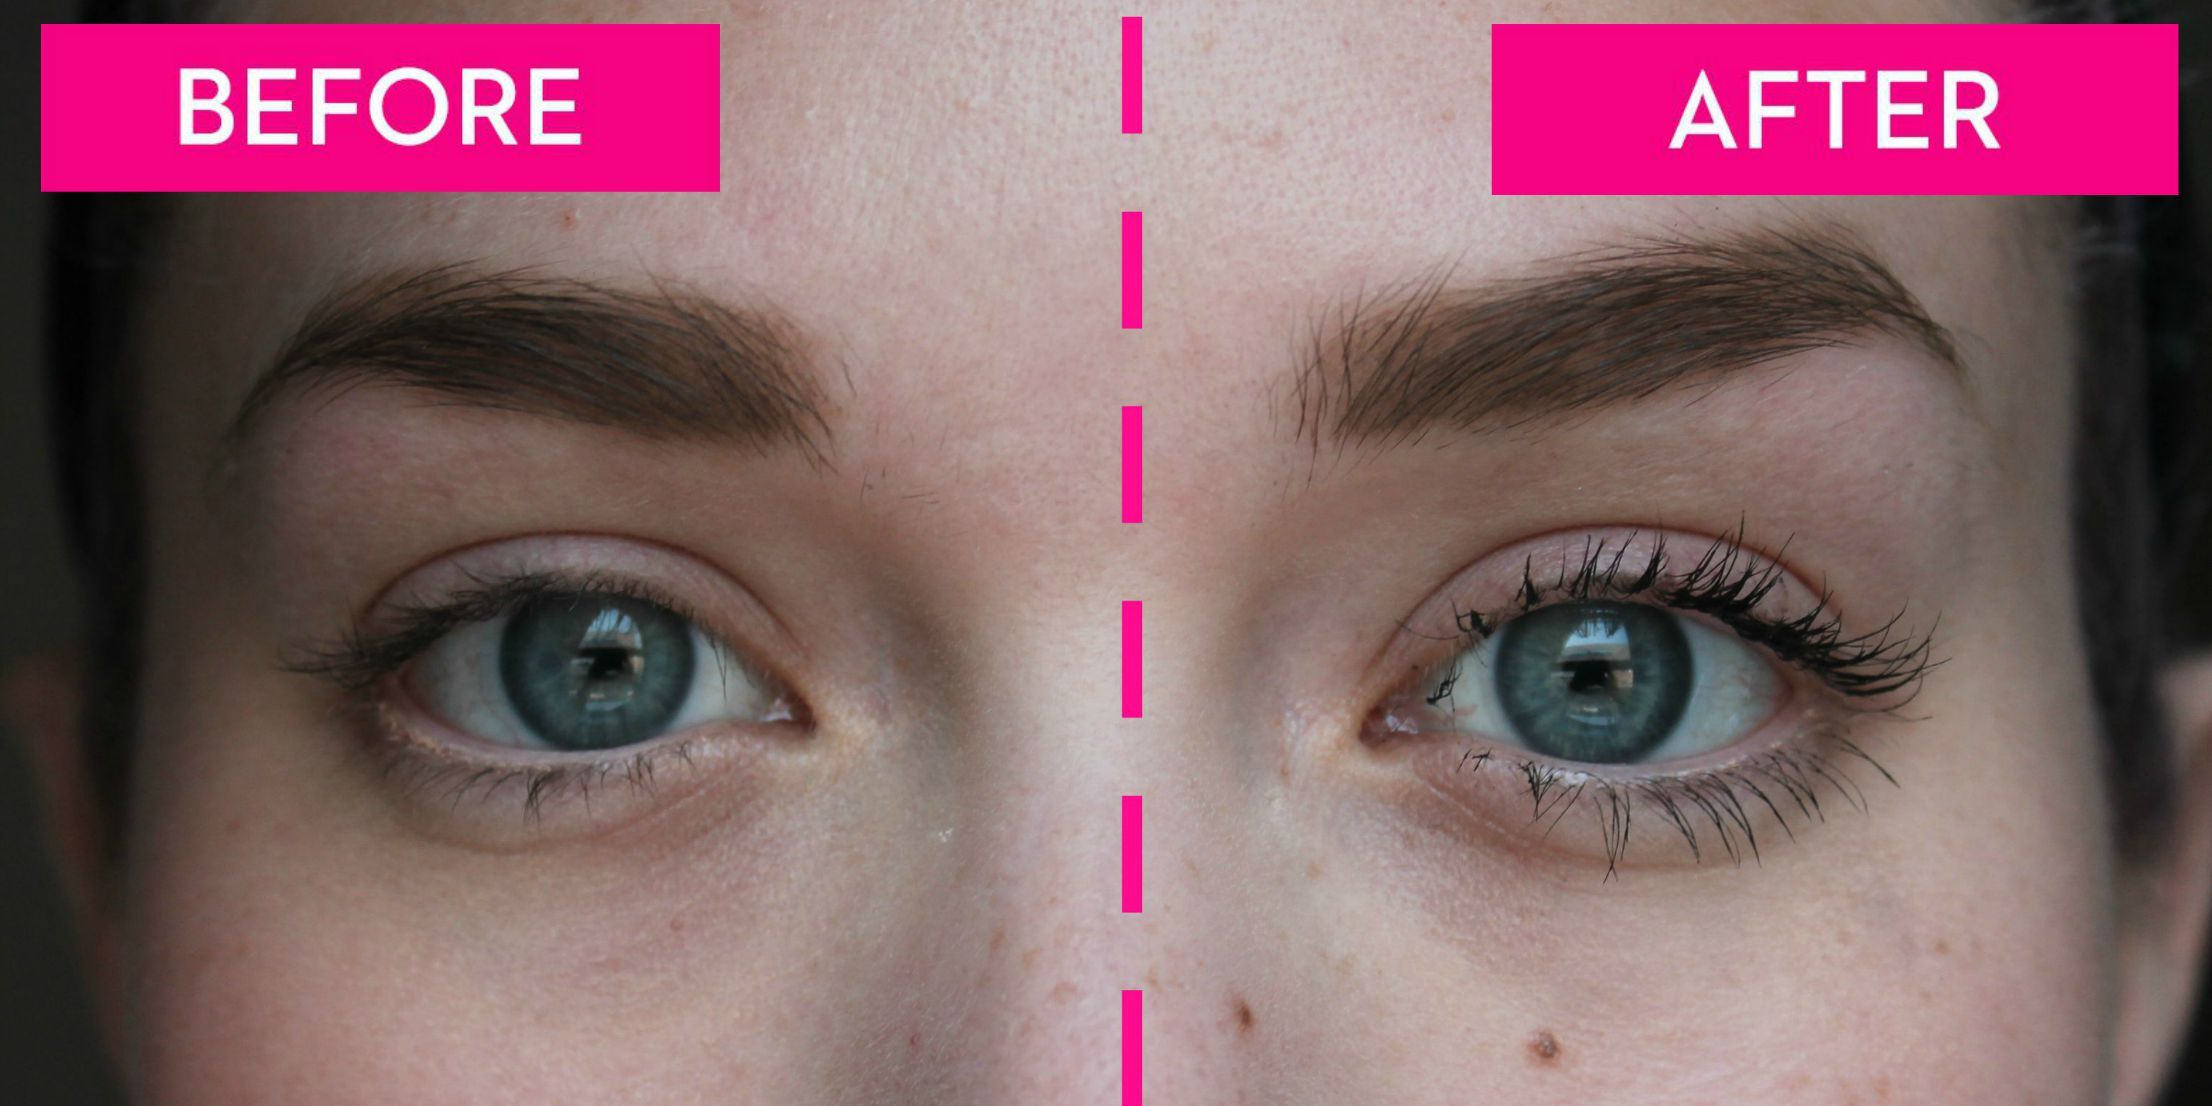 How To Curl Your Eyelashes Before And After Eyelash Curler Photos